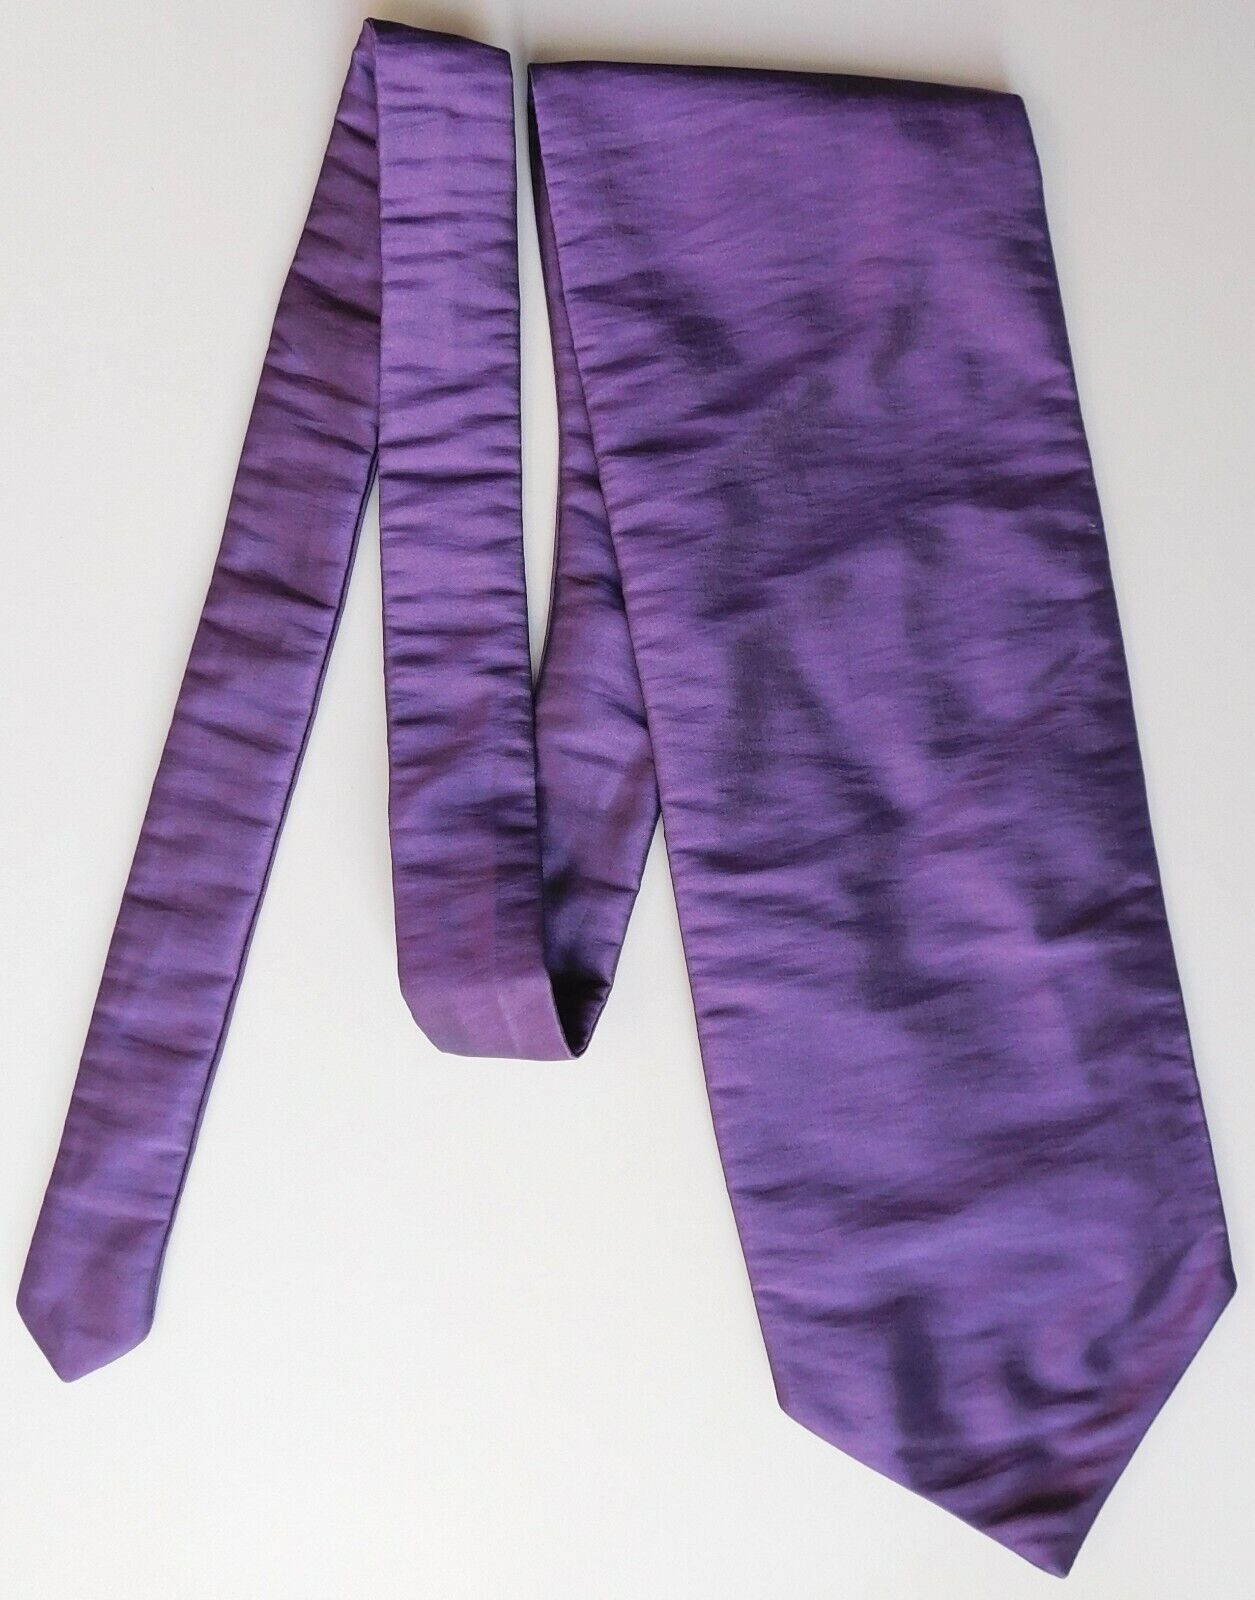 Purple satin cravat single wing self tie type traditional mens wedding accessory